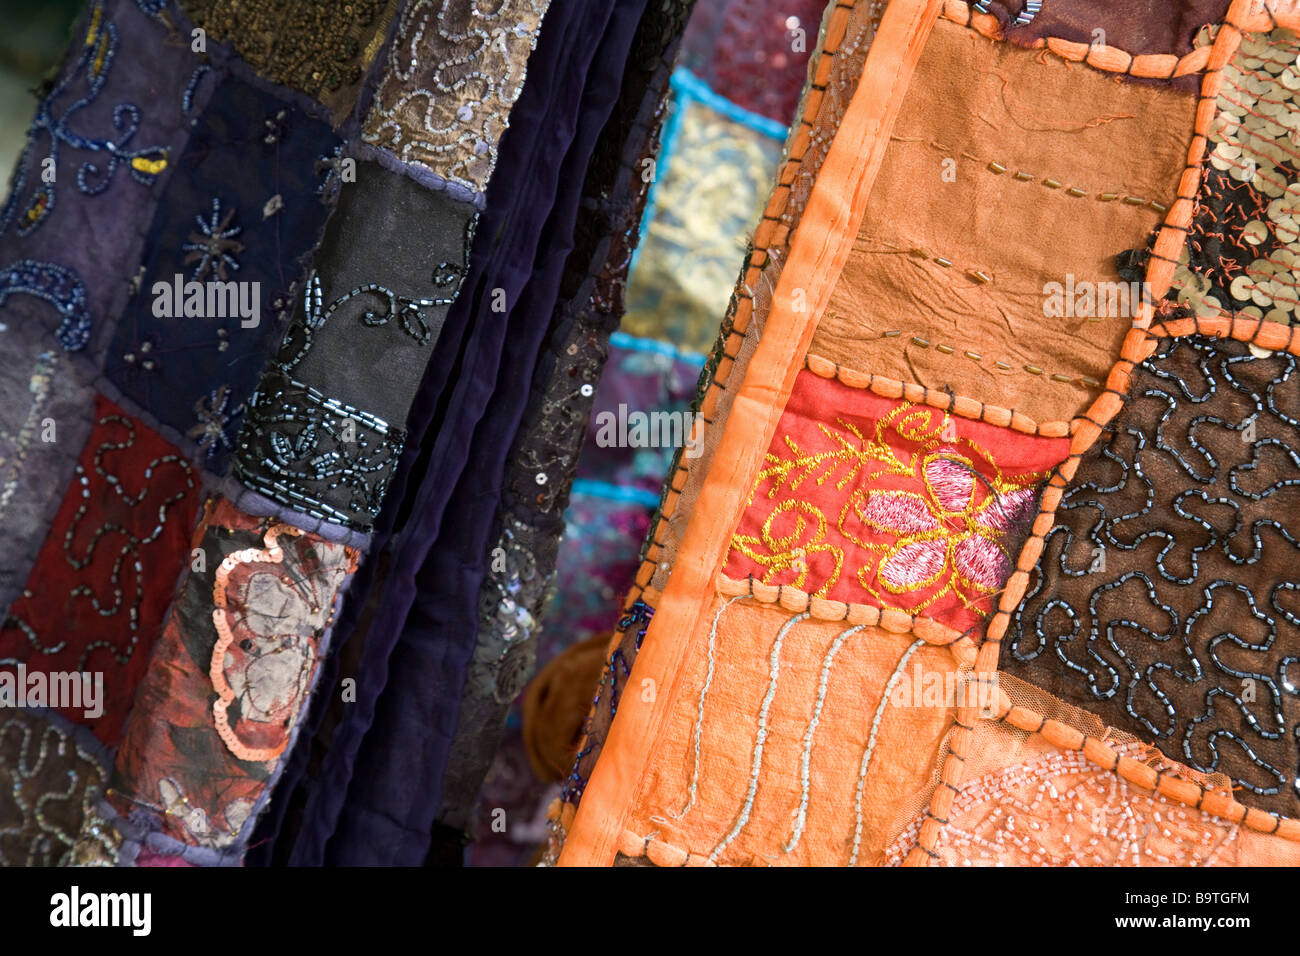 Close up of colourful material for sale, Jordan - Stock Image